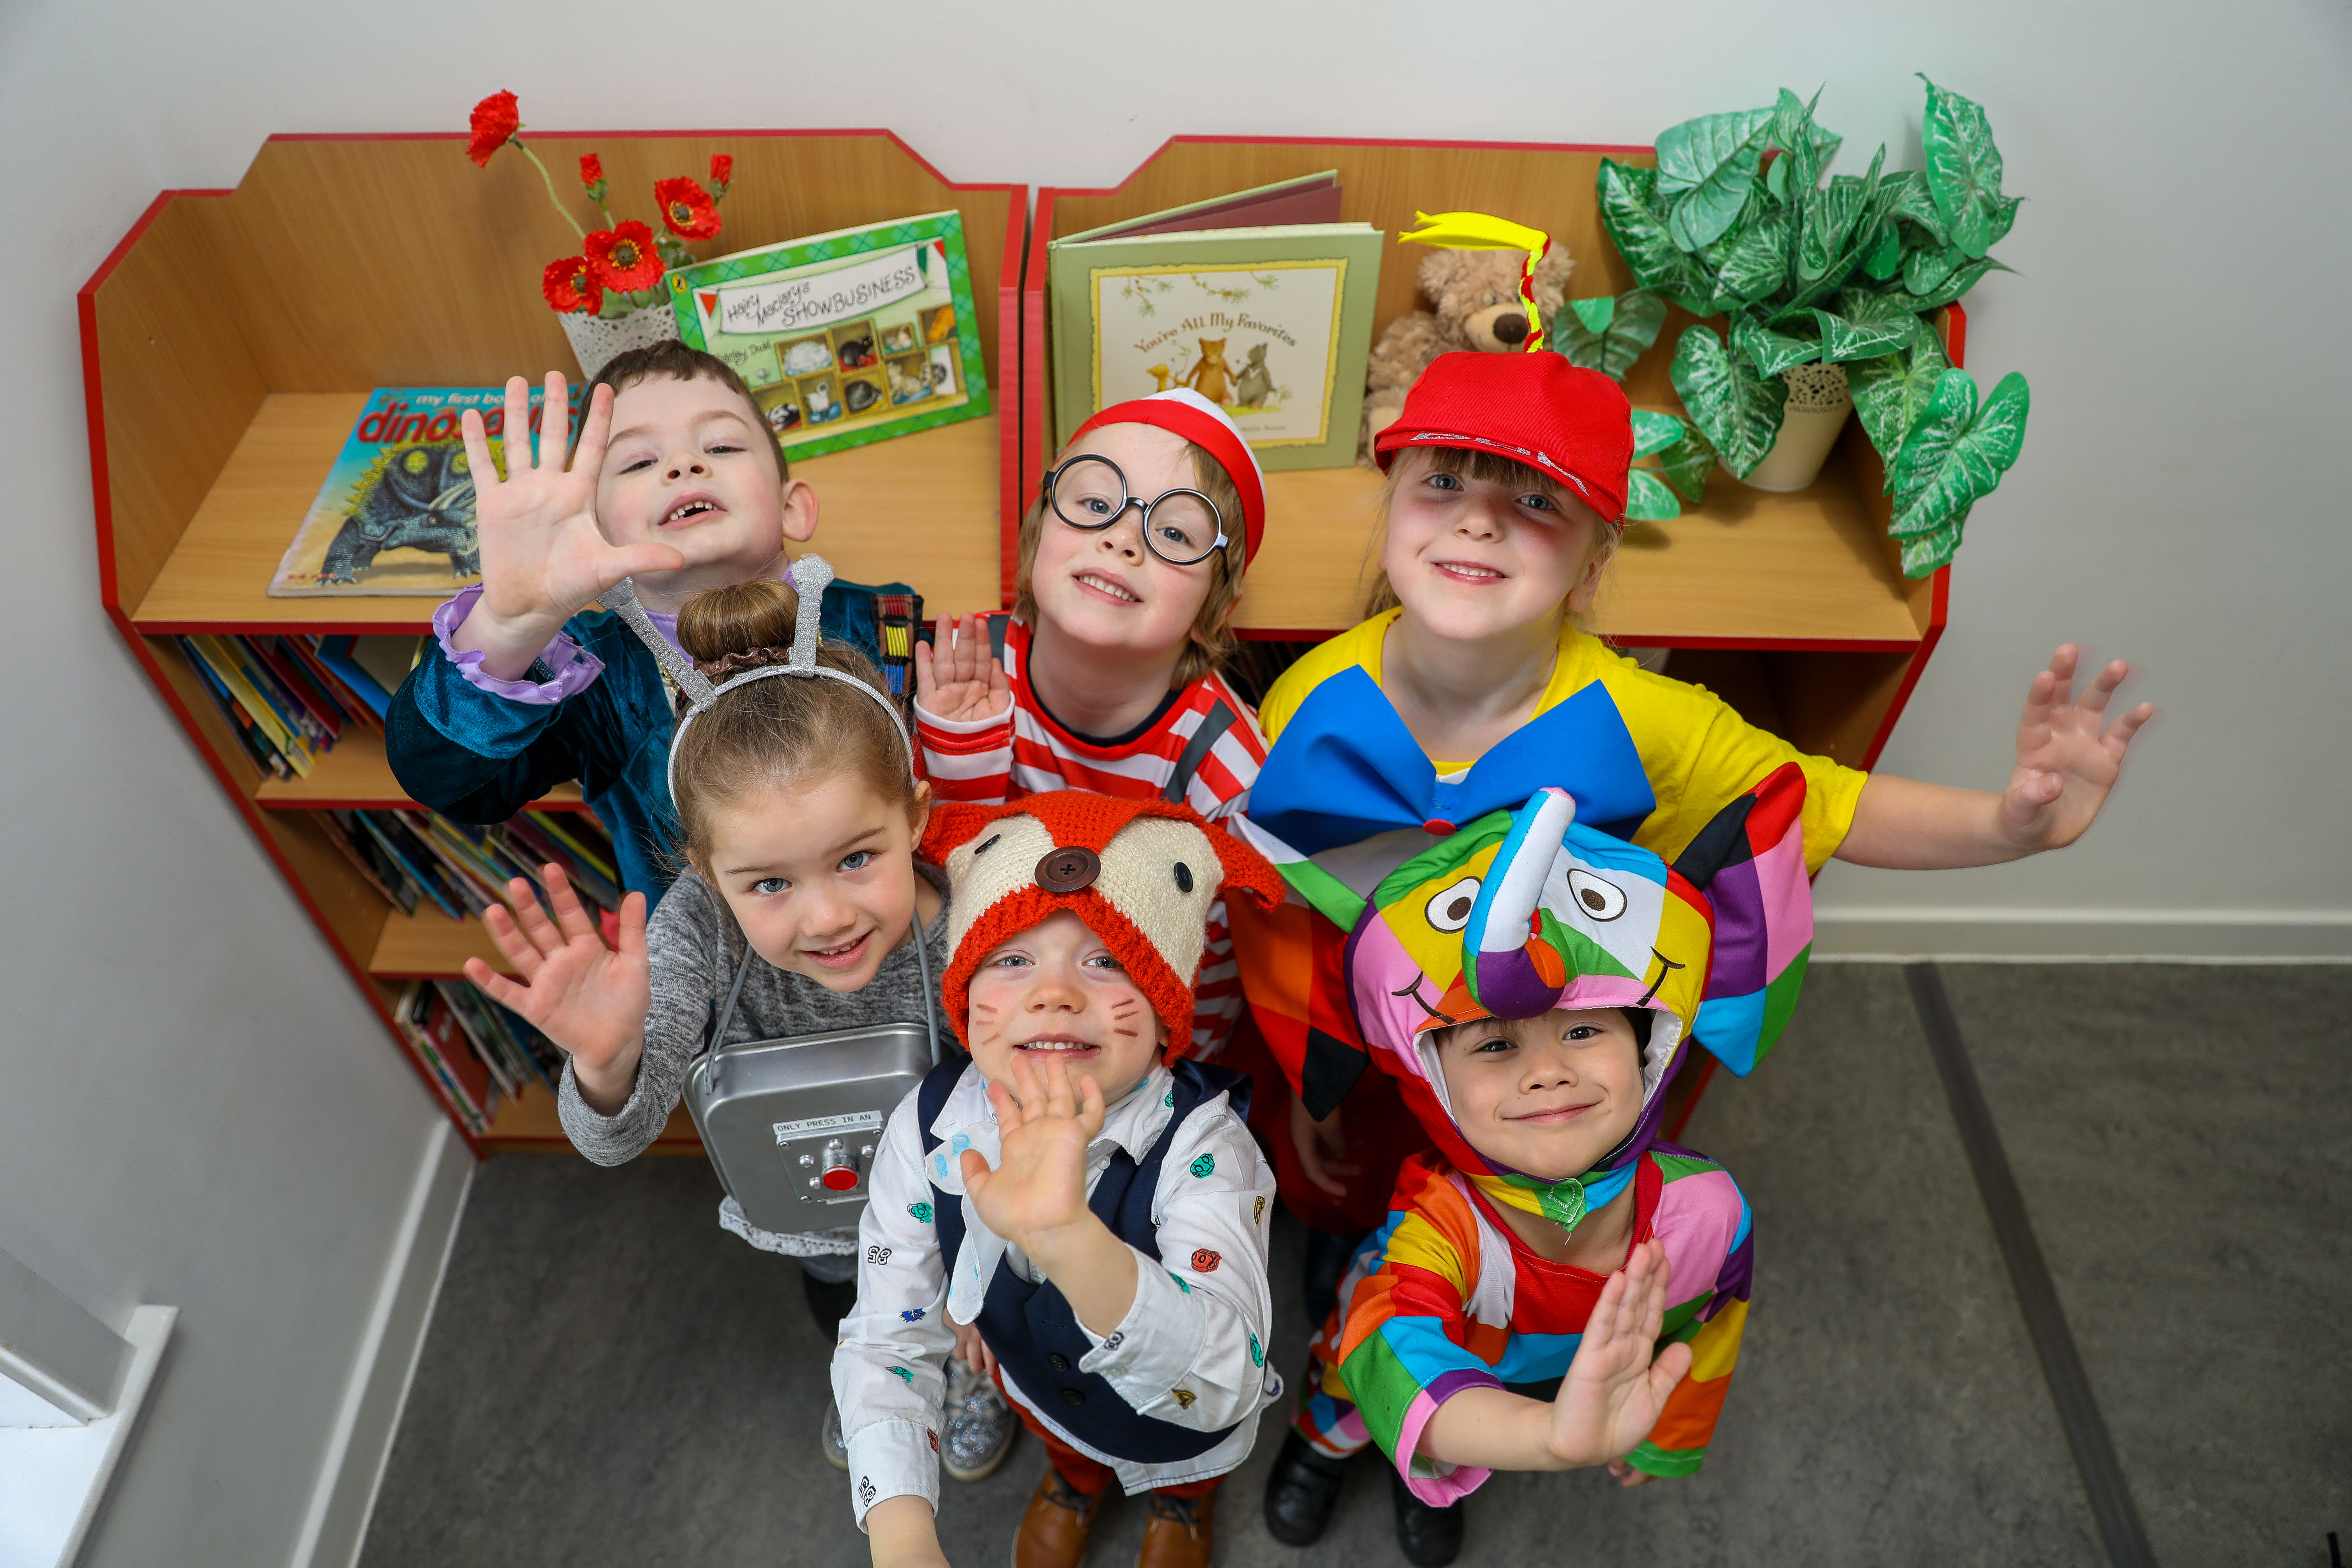 Fun costumes for World Book Day with P1/2 pupils Noah Yates, Niamh Gibson, Bethany Hedges, Archie Mitchell, Lucas Riely and Zakk Brown. But for some parents, events such as these can be a step too far.